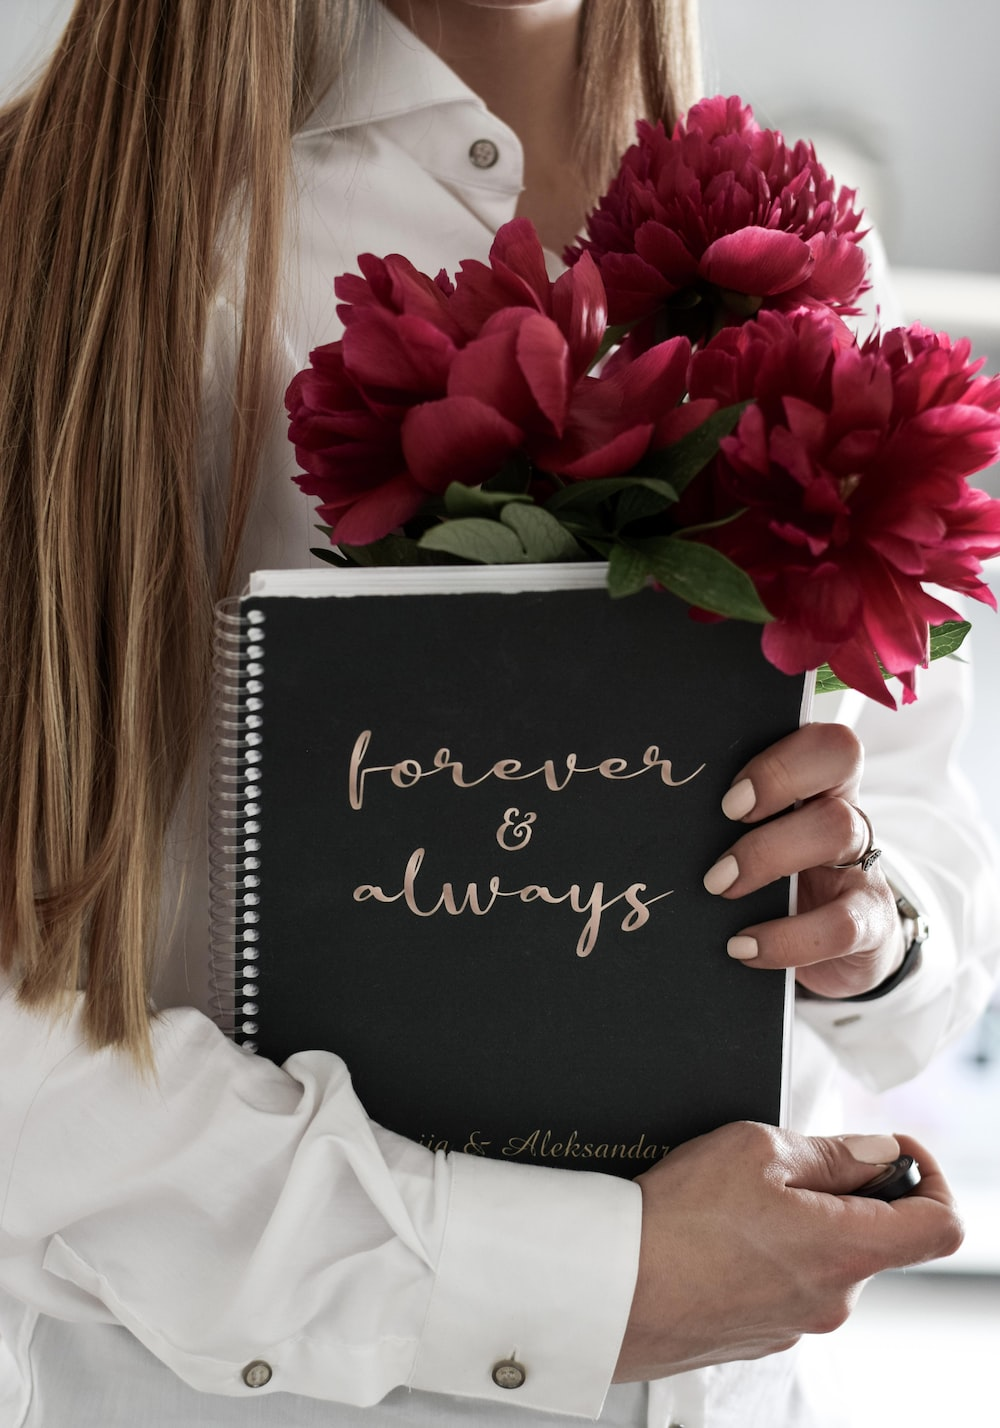 woman wearing white blouse carrying flower and book